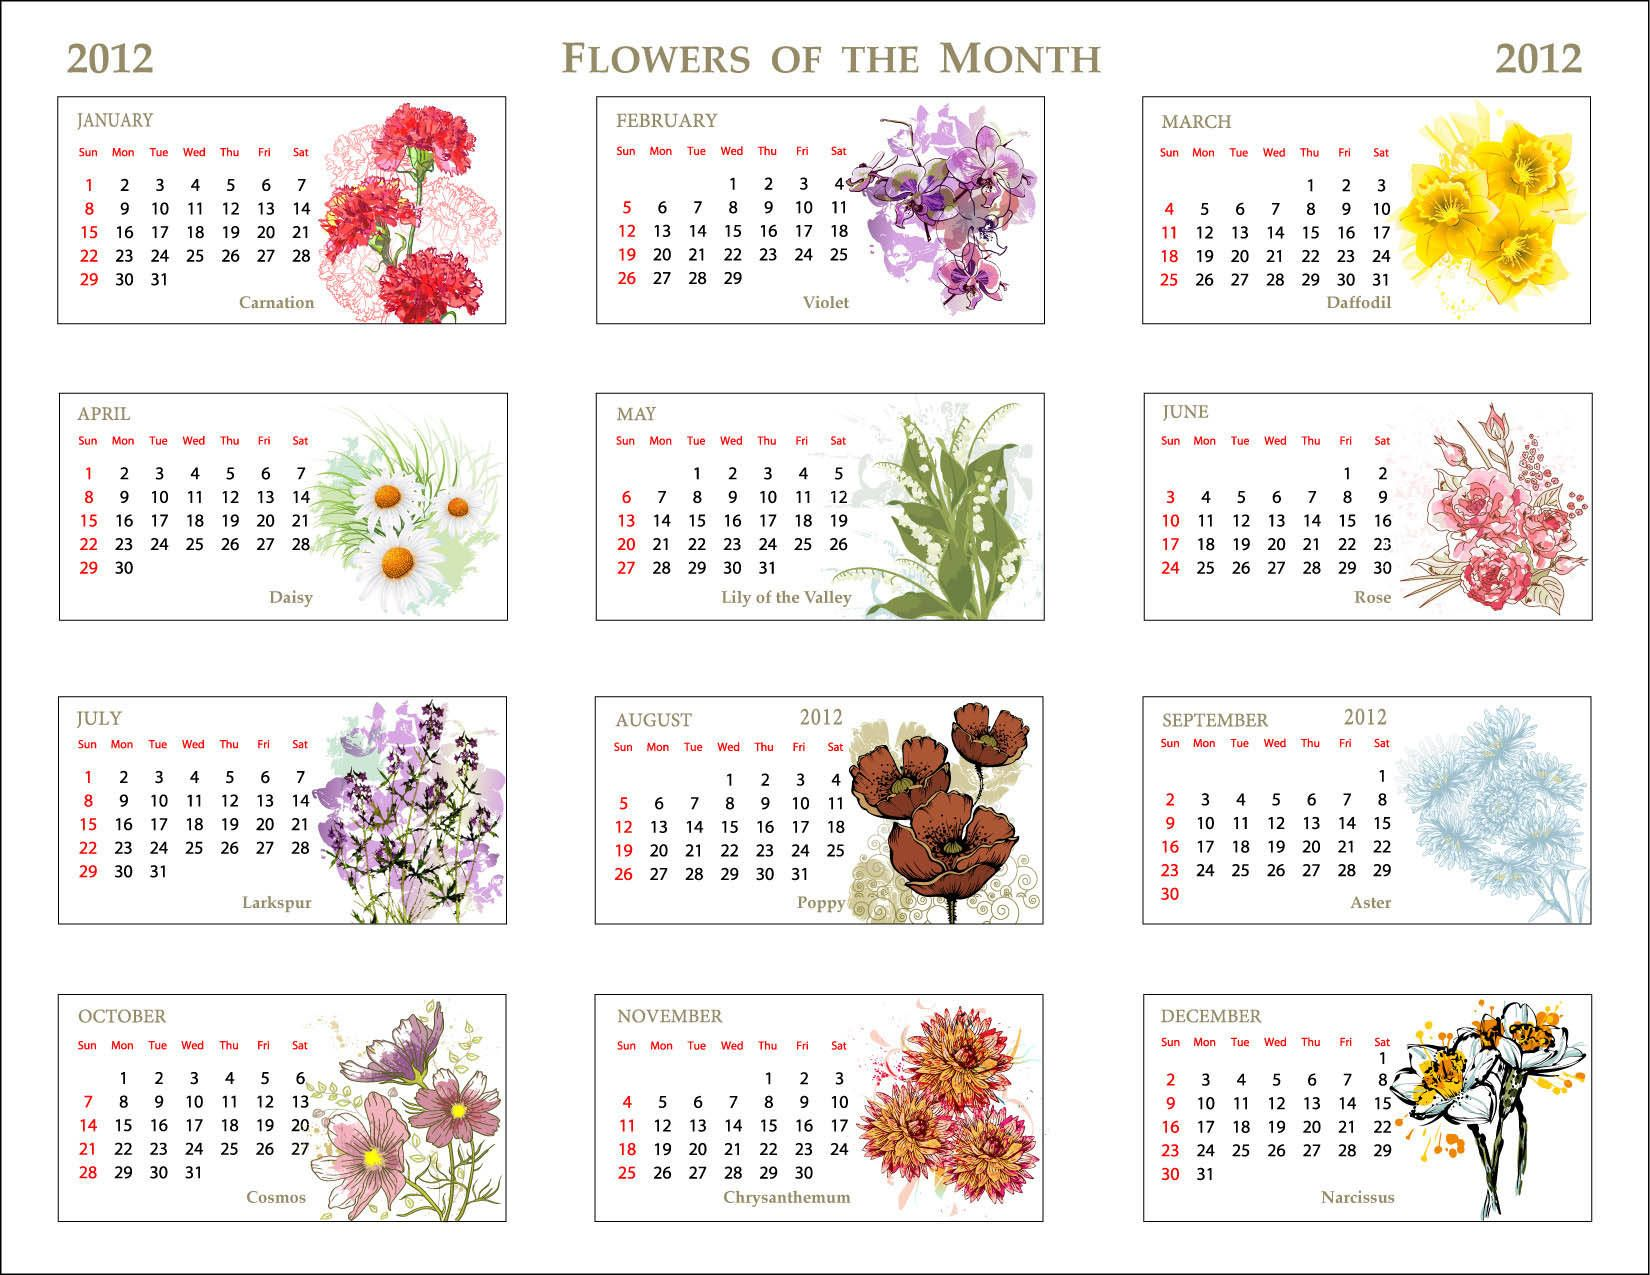 Unique calendar featuring the flowers of the month flower birth pictures flowers meaning google search izmirmasajfo Images